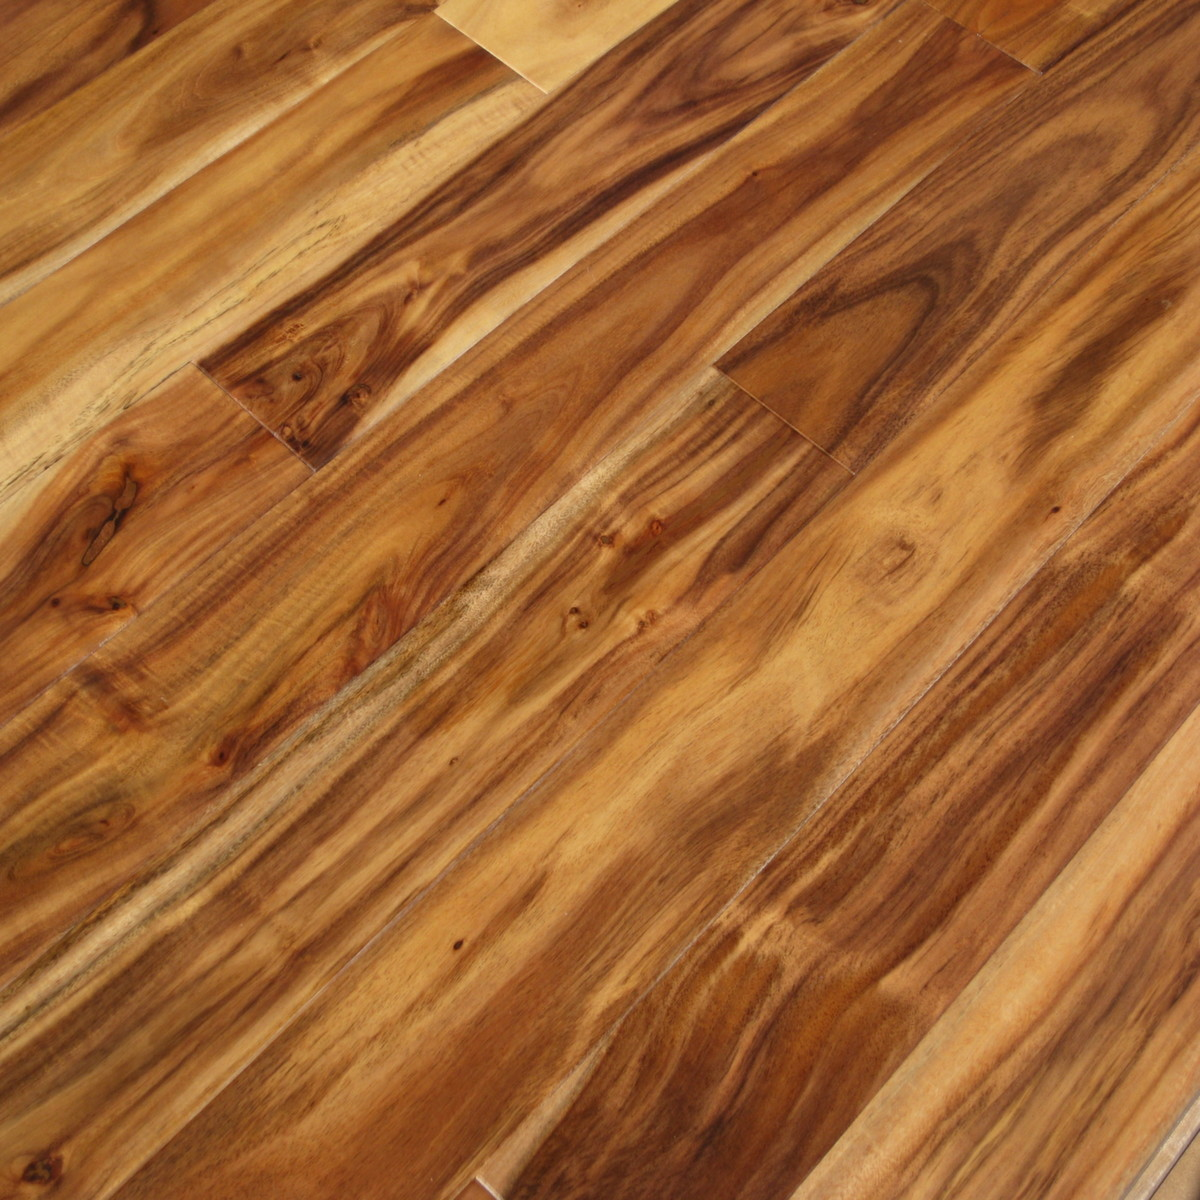 Acacia Handscraped Natural Hardwood Flooring - Acacia Natural Hand Scraped Hardwood Flooring Acacia Confusa